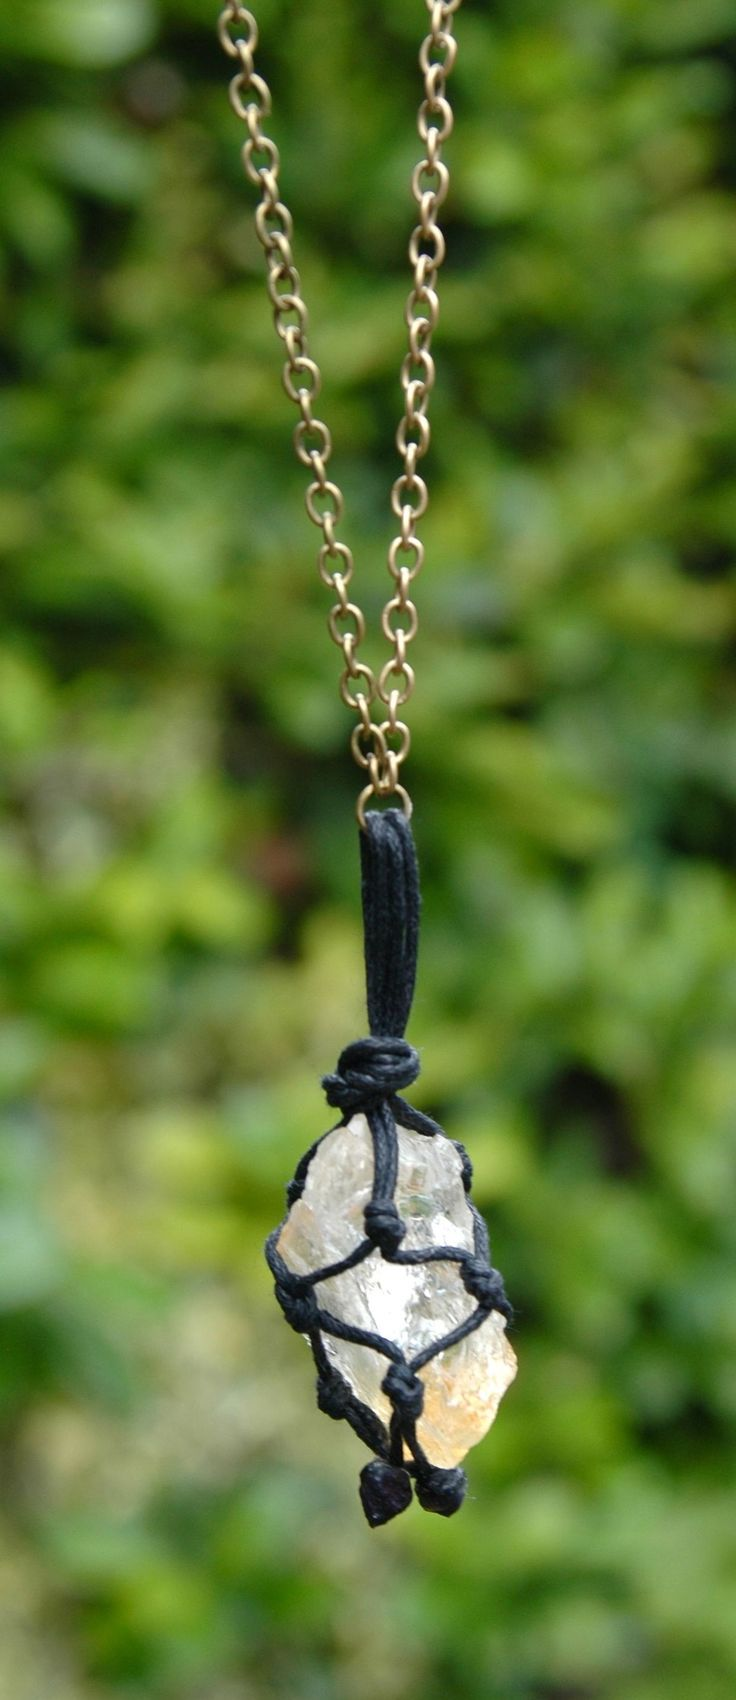 Raw citrine crystal pendant necklace, boho jewellery, bohemian jewelry by TessHeaven on Etsy https://www.etsy.com/uk/listing/240476869/raw-citrine-pendant-necklace-raw-crystal?ref=shop_home_active_1